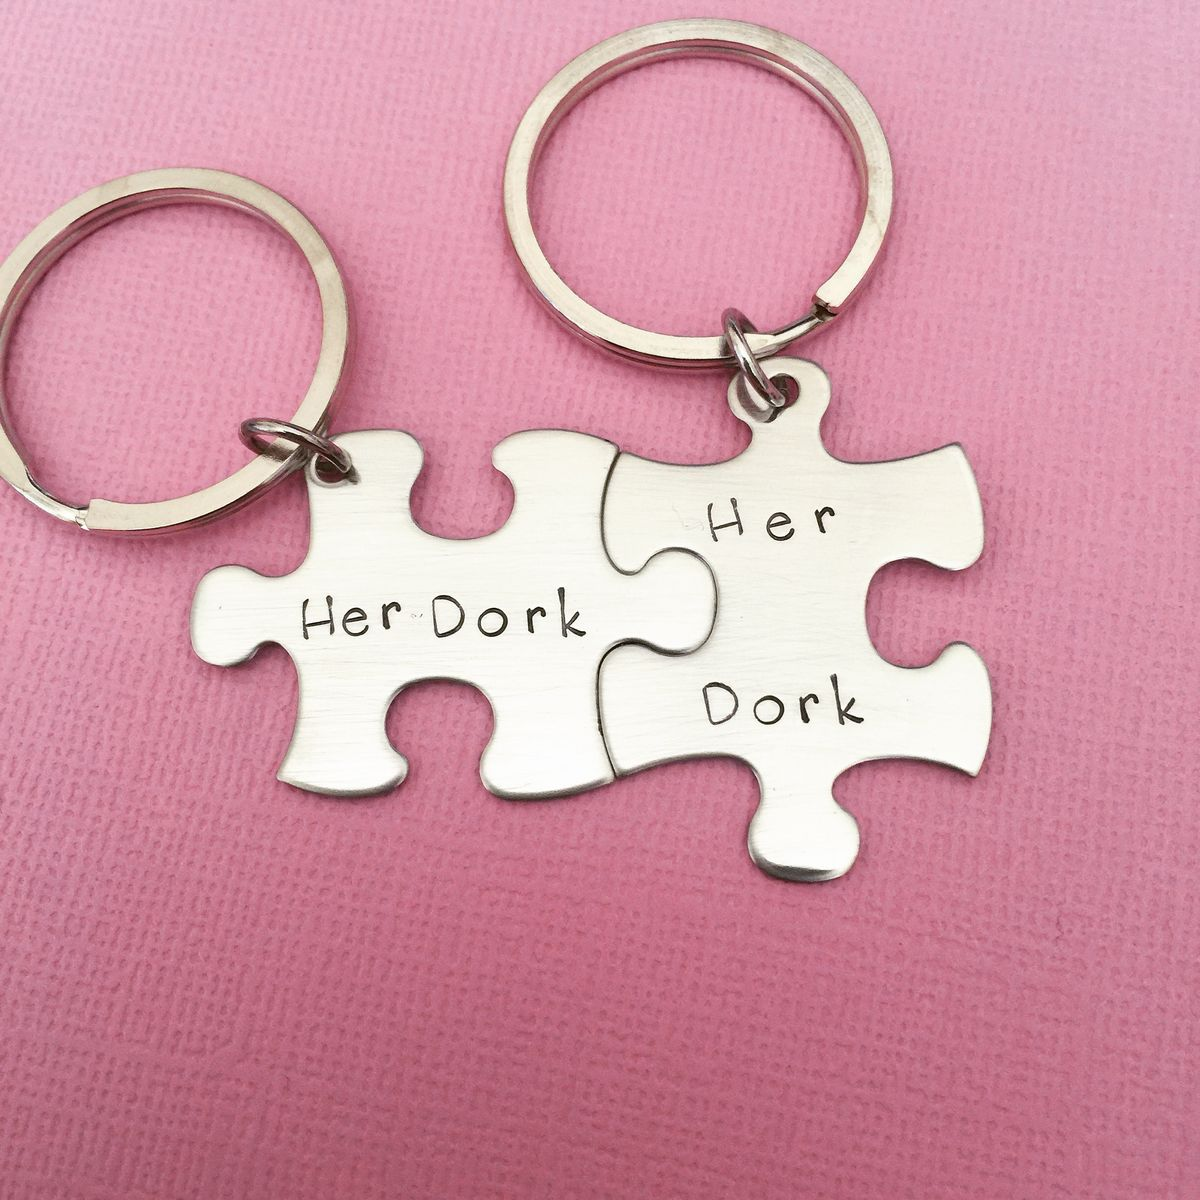 Her Dork Her Dork, Couples Keychains, LGBT Gift - product images  of